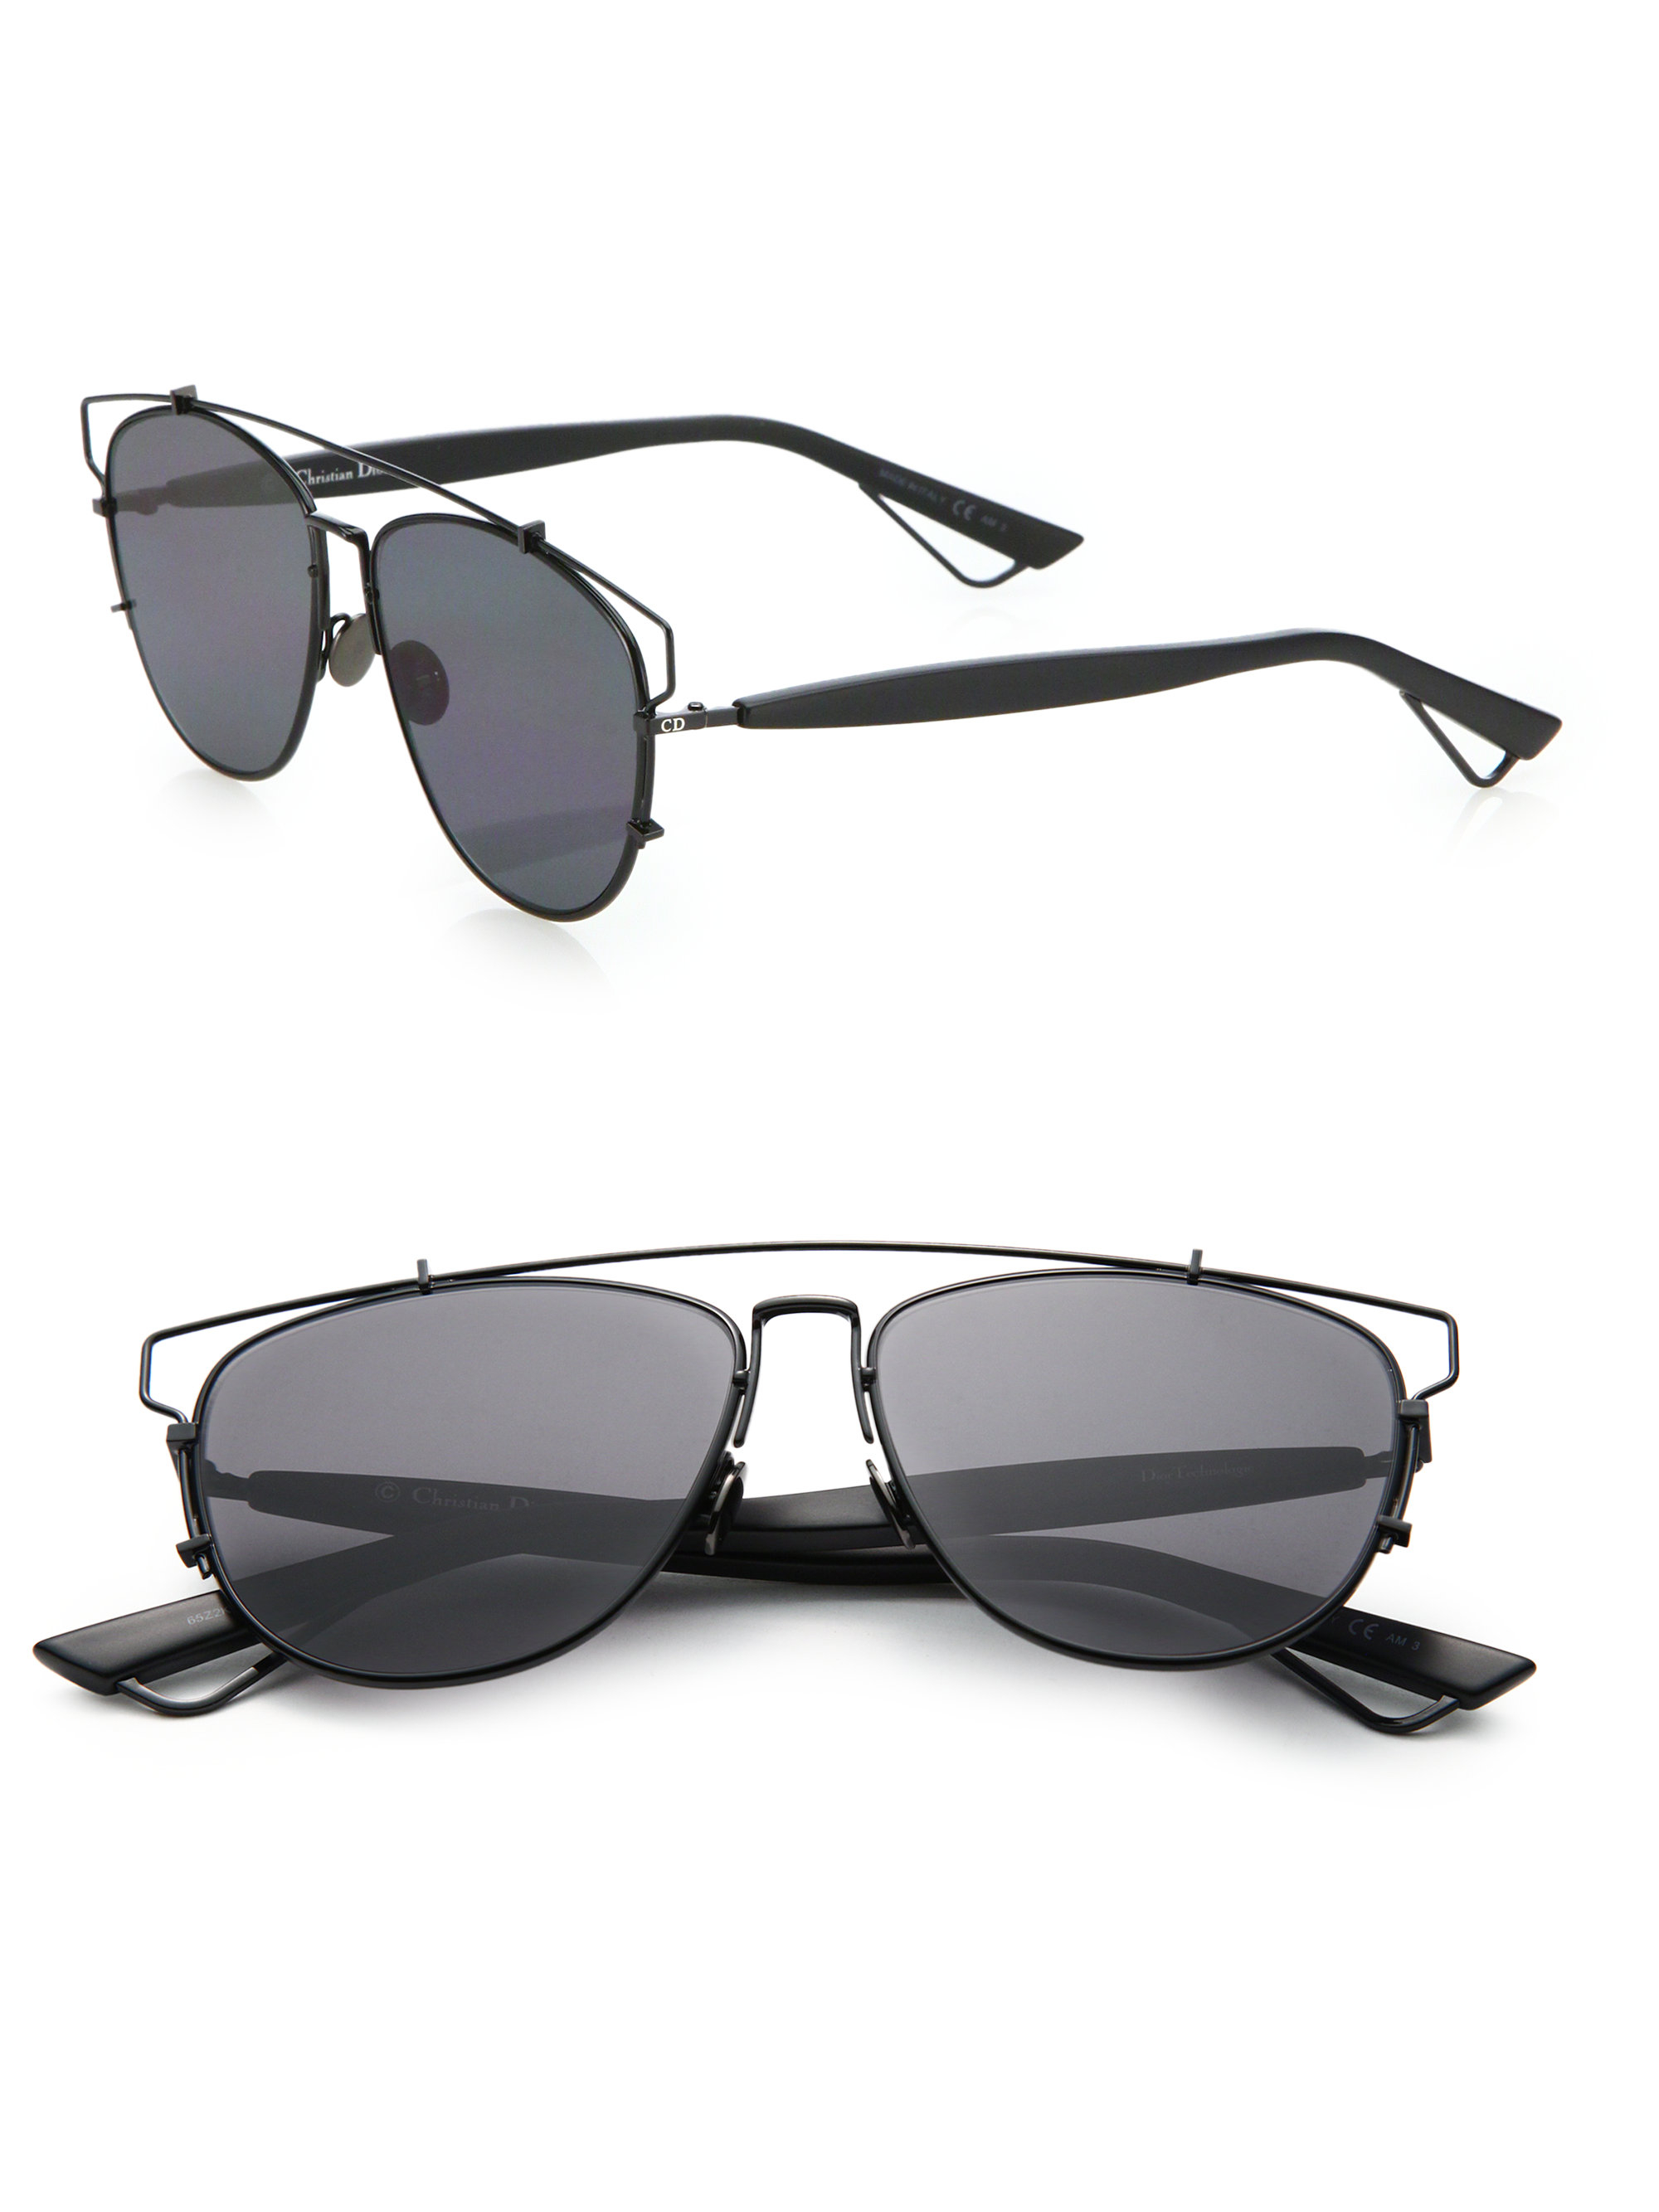 Dior Sunglasses Black  dior sunglasses black gold 6am mall com